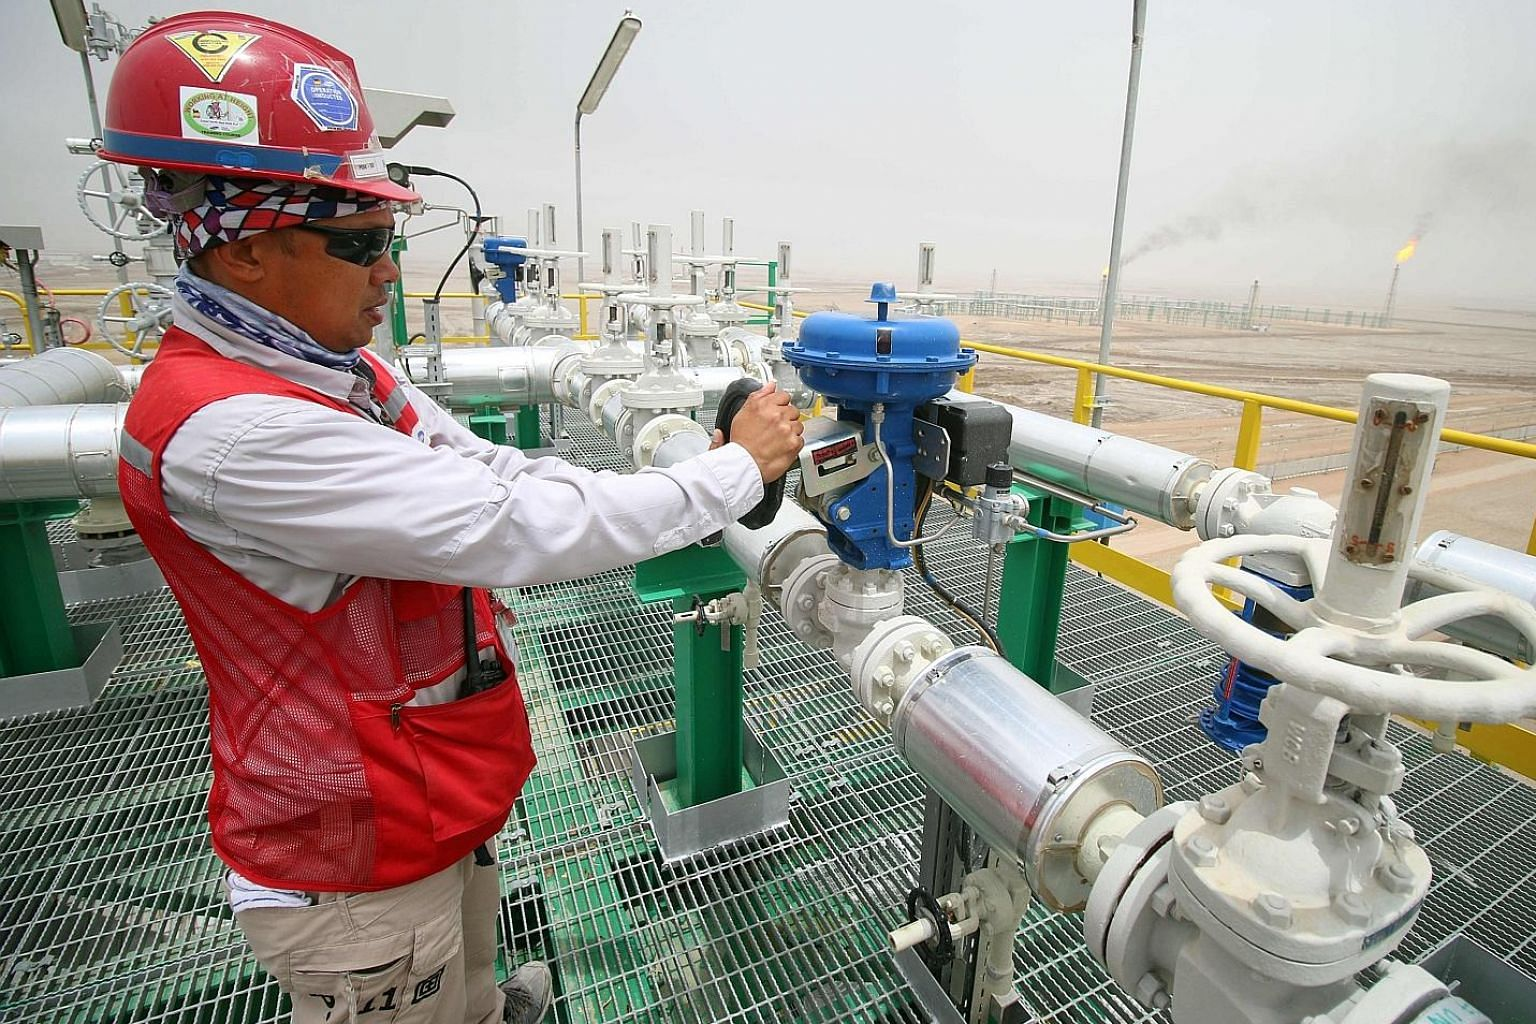 Degassing station facilities at the Zubair oil and gas field north of the southern Iraqi province of Basra. Opec members reached an agreement to cut oil production last Friday, which is a welcome development for financial markets, according to FXTM resear